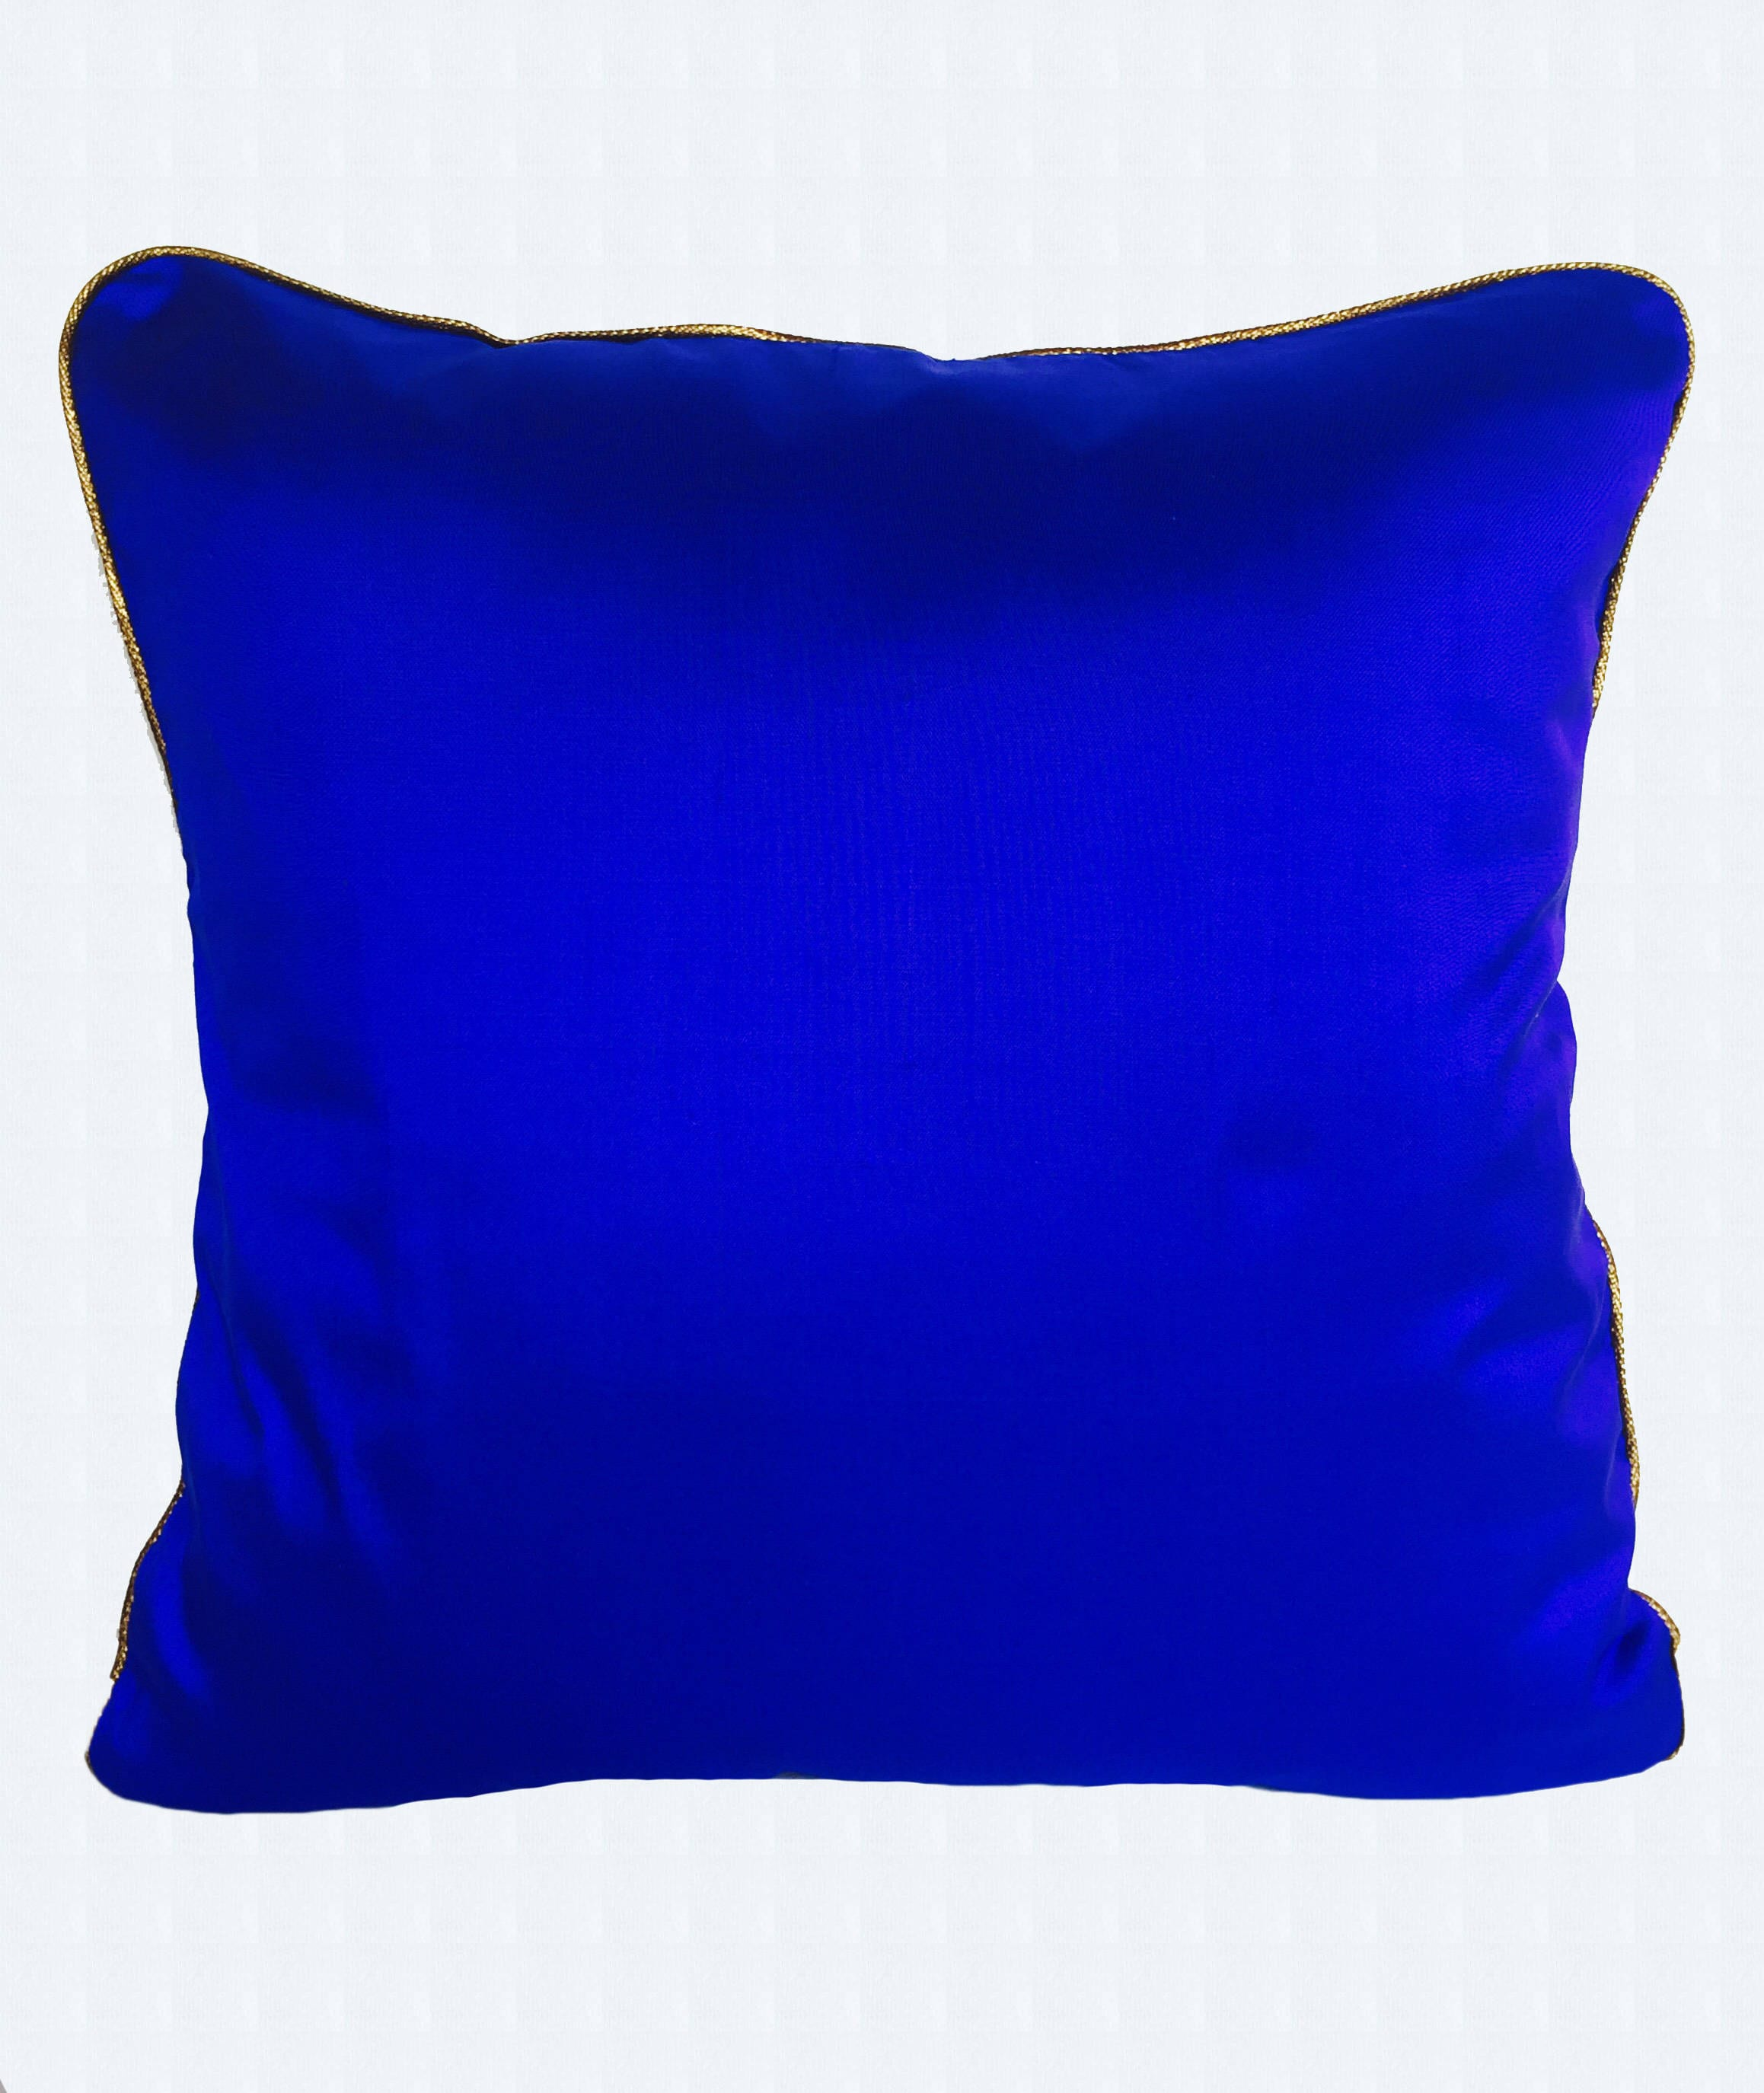 Royal Blue dupioni silk throw pillow cover. Cobalt blue